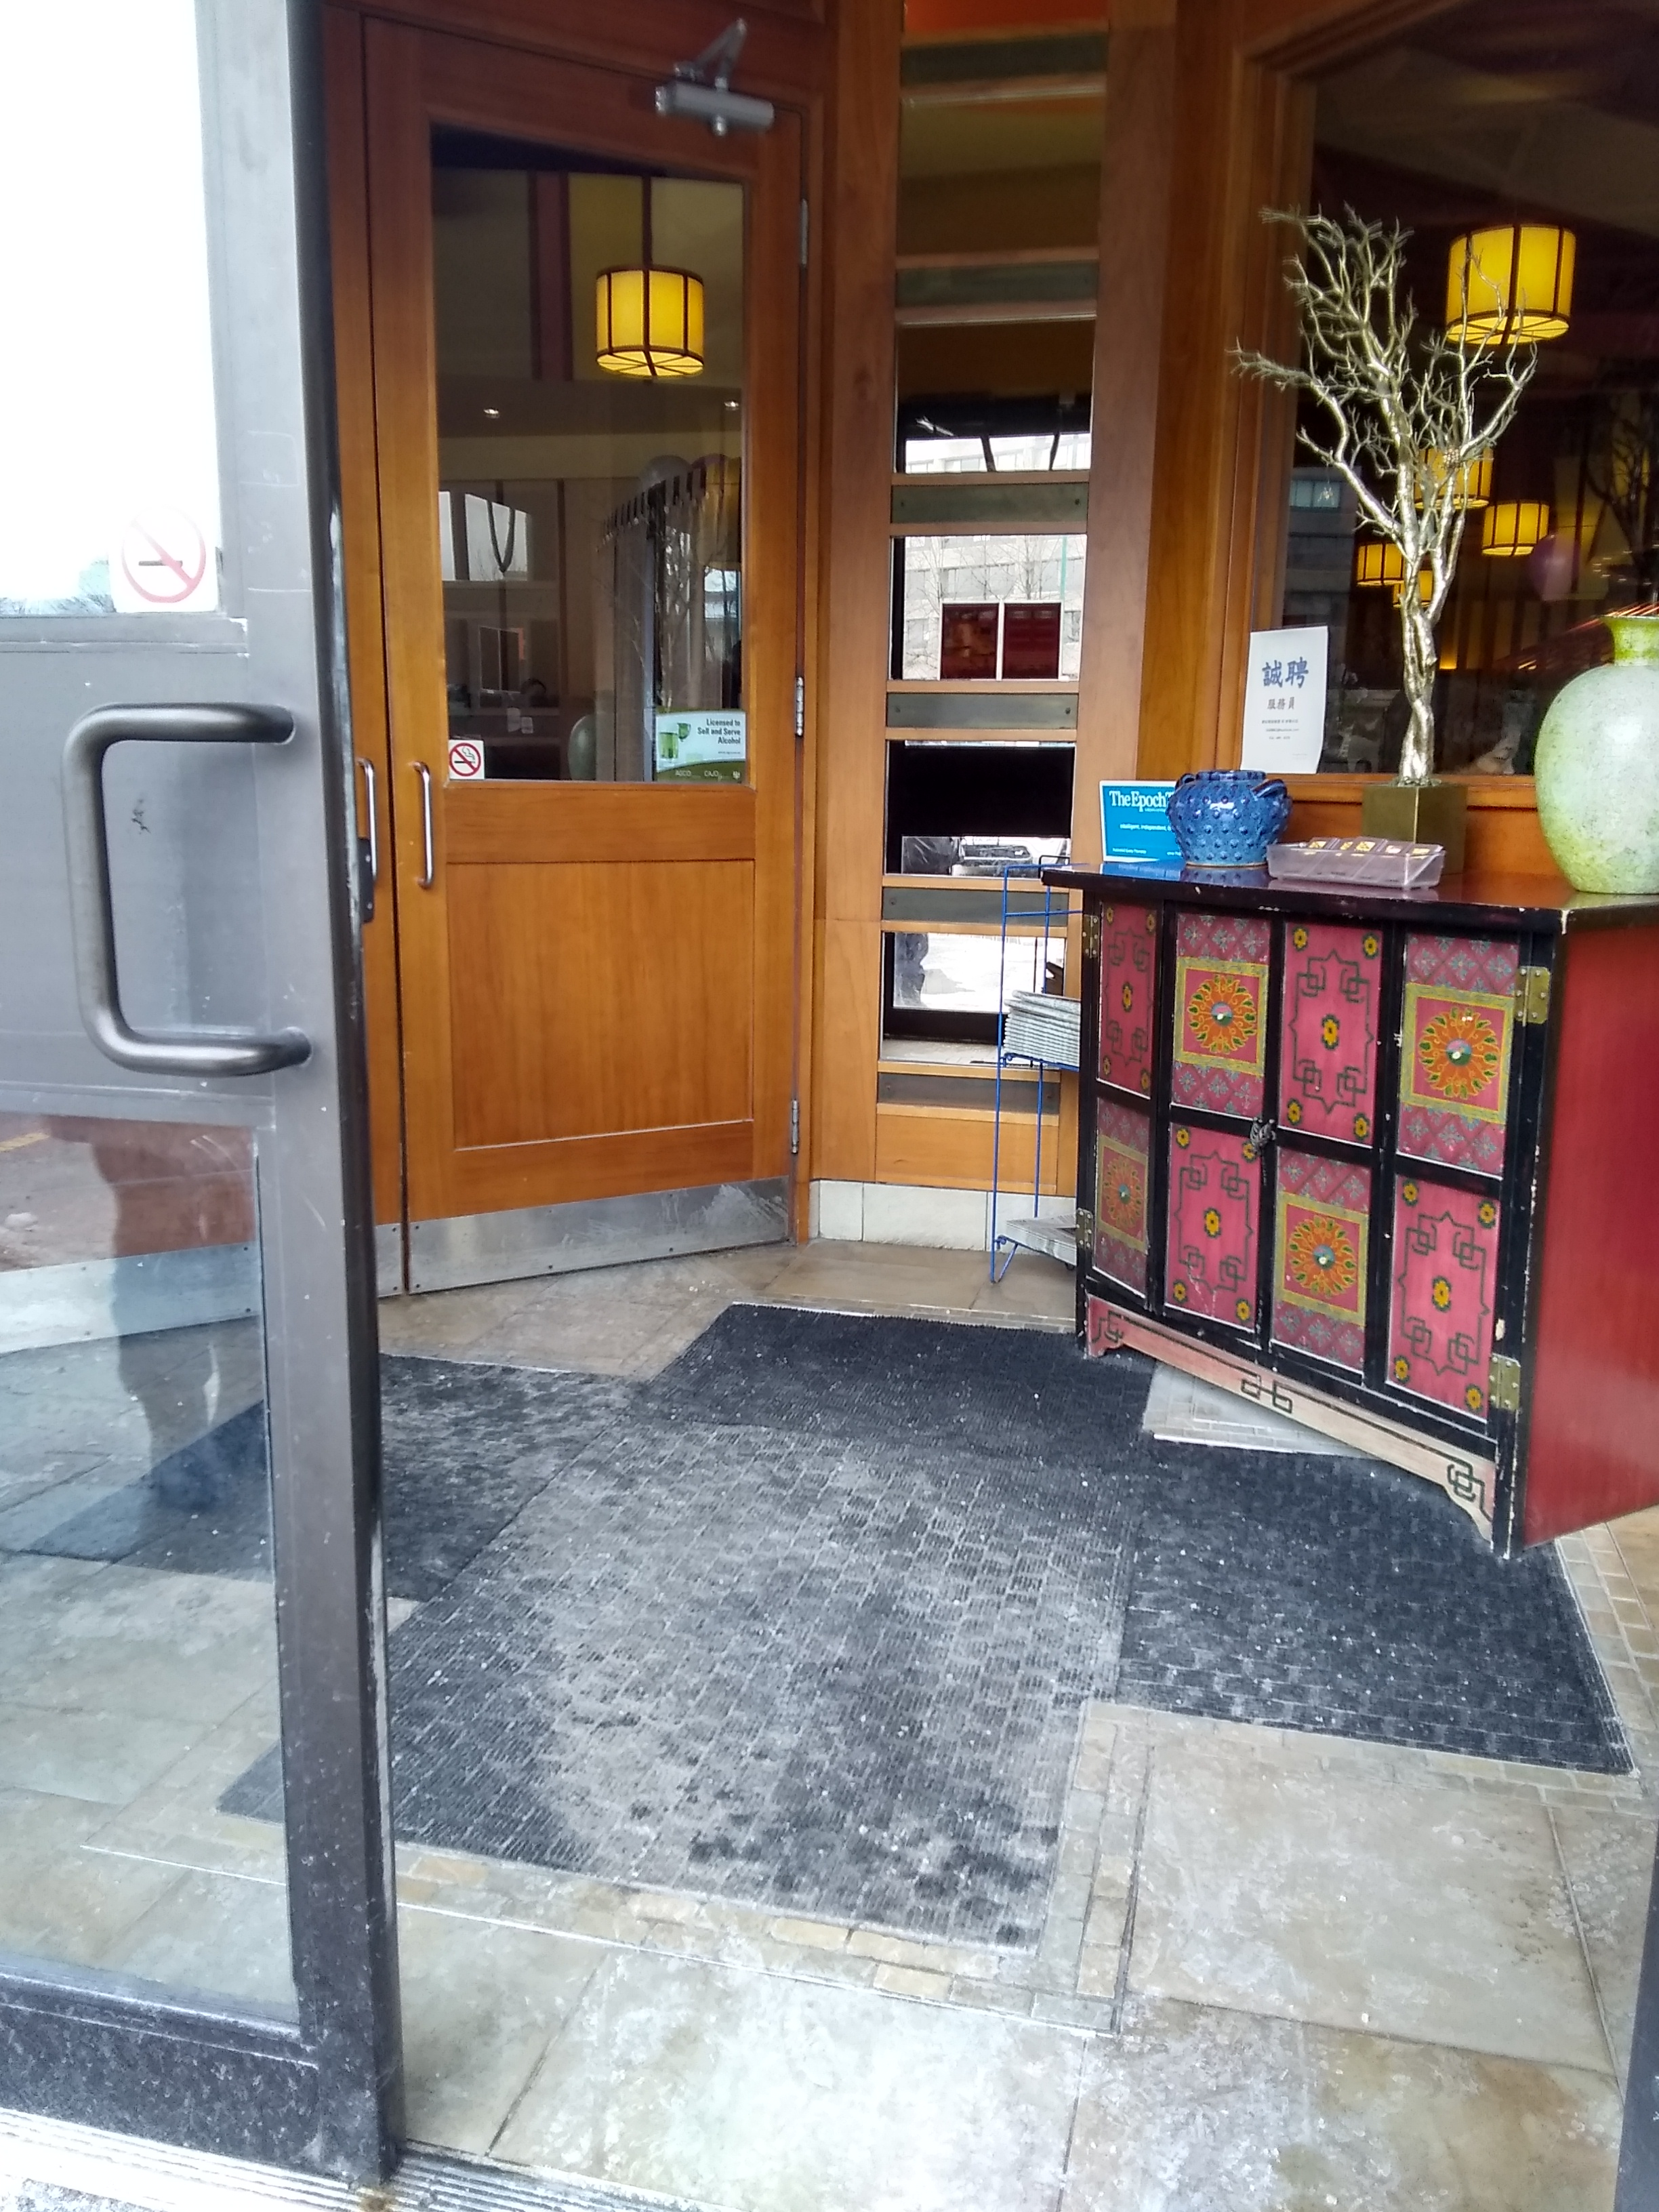 Picture of the sidewalk level entrance of Mongolian Grill